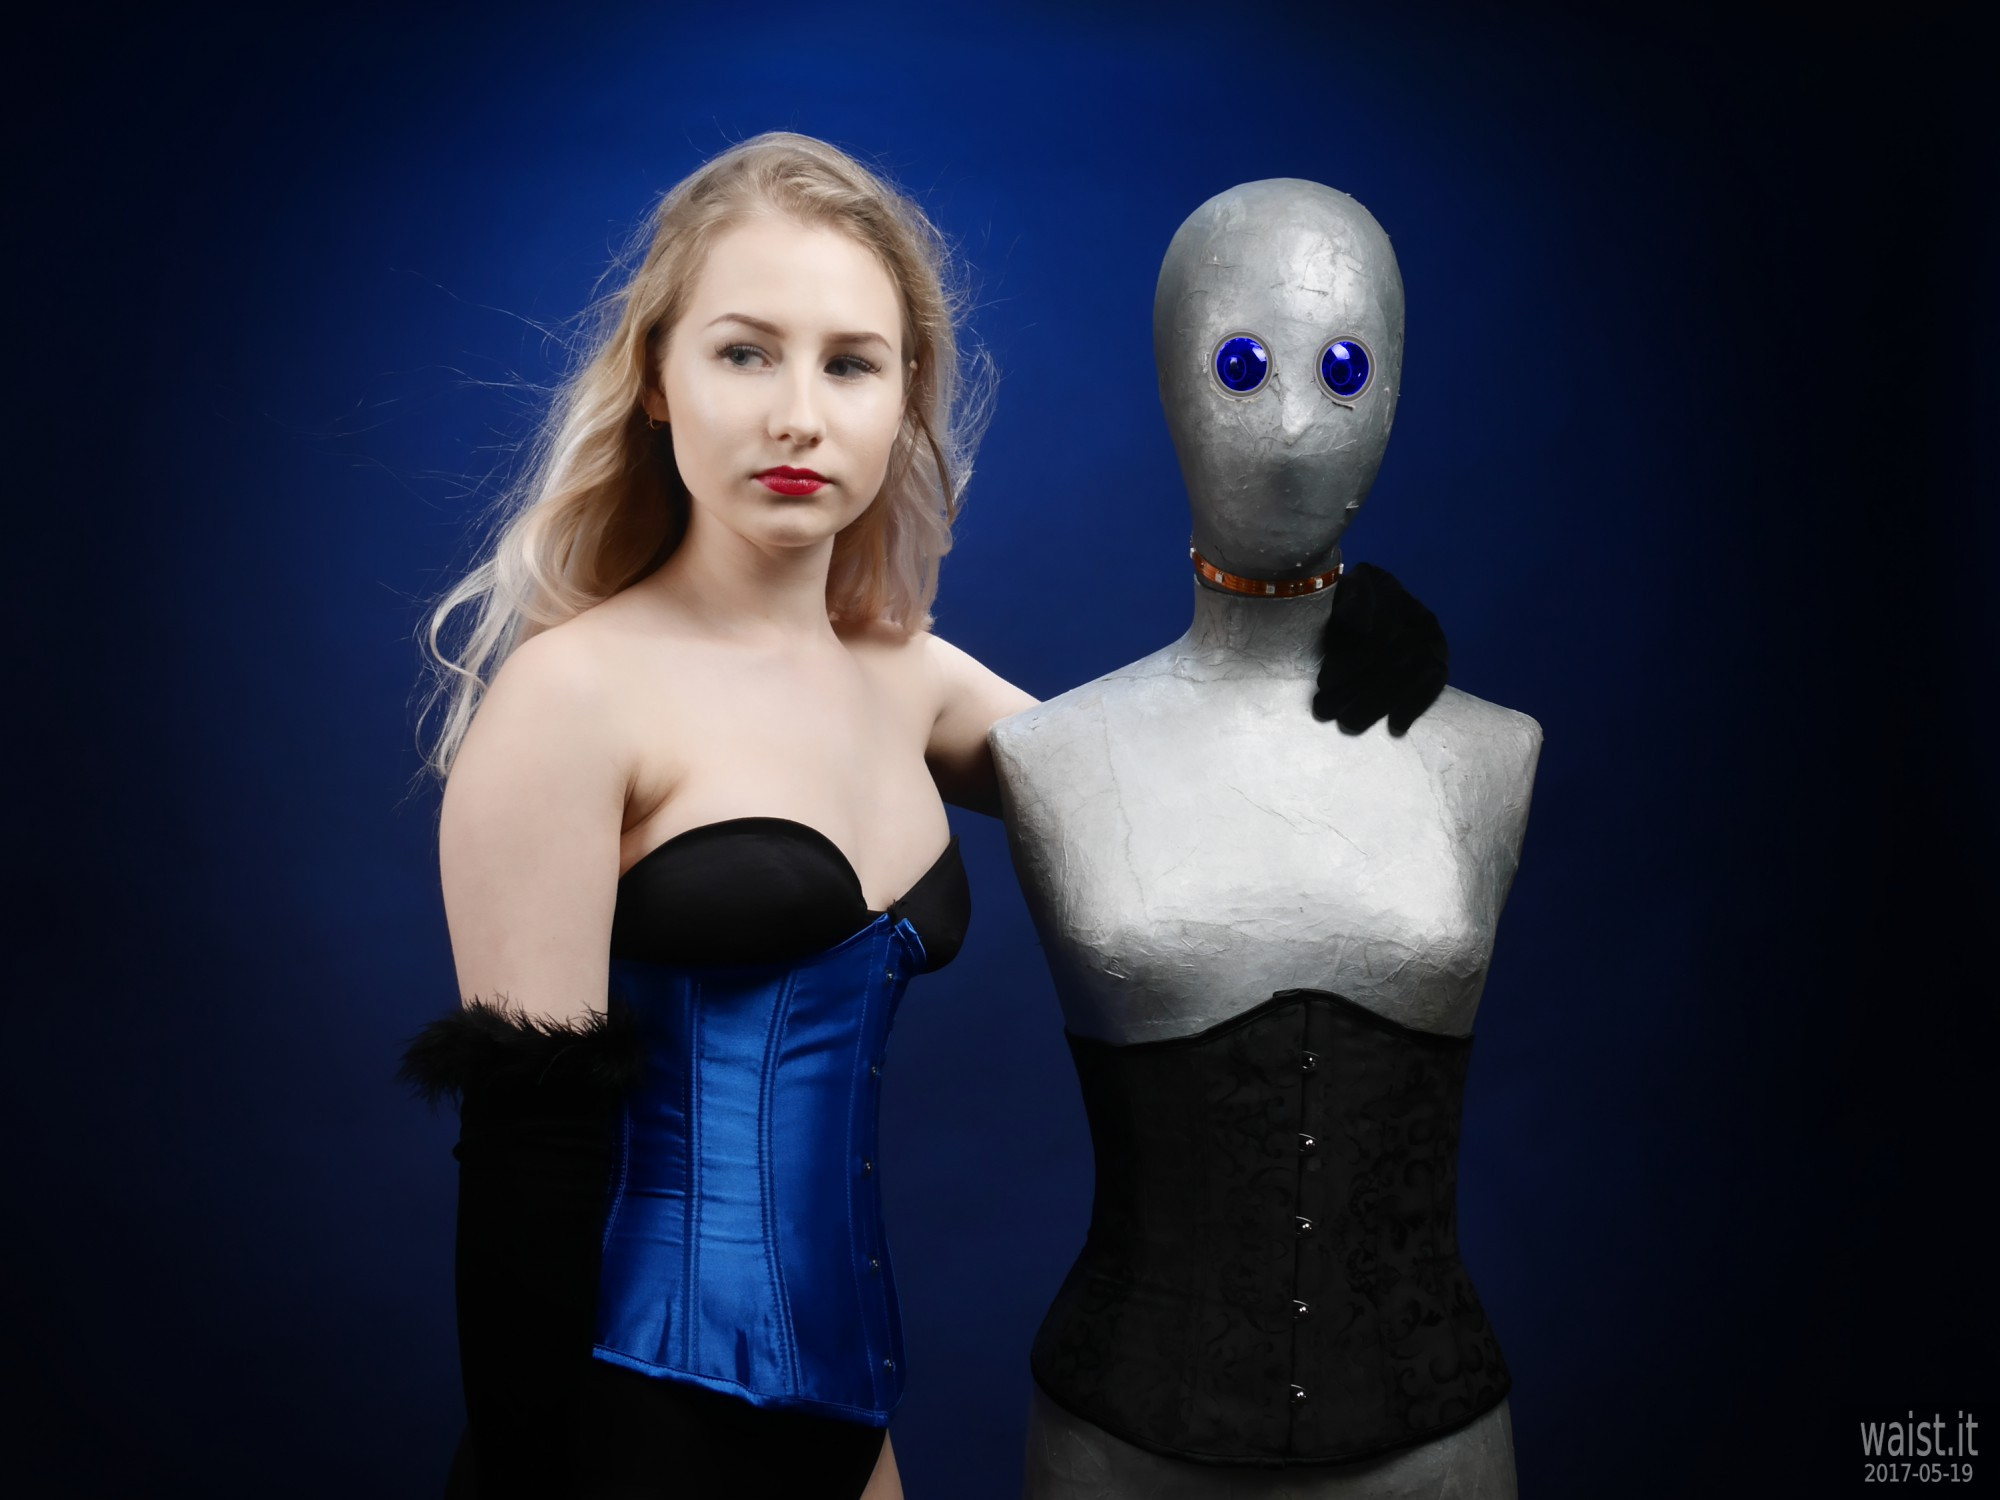 2017-05-19 Laura Sele tightly laced blue underbust corset worn over black Miraclesuit bodyshaper